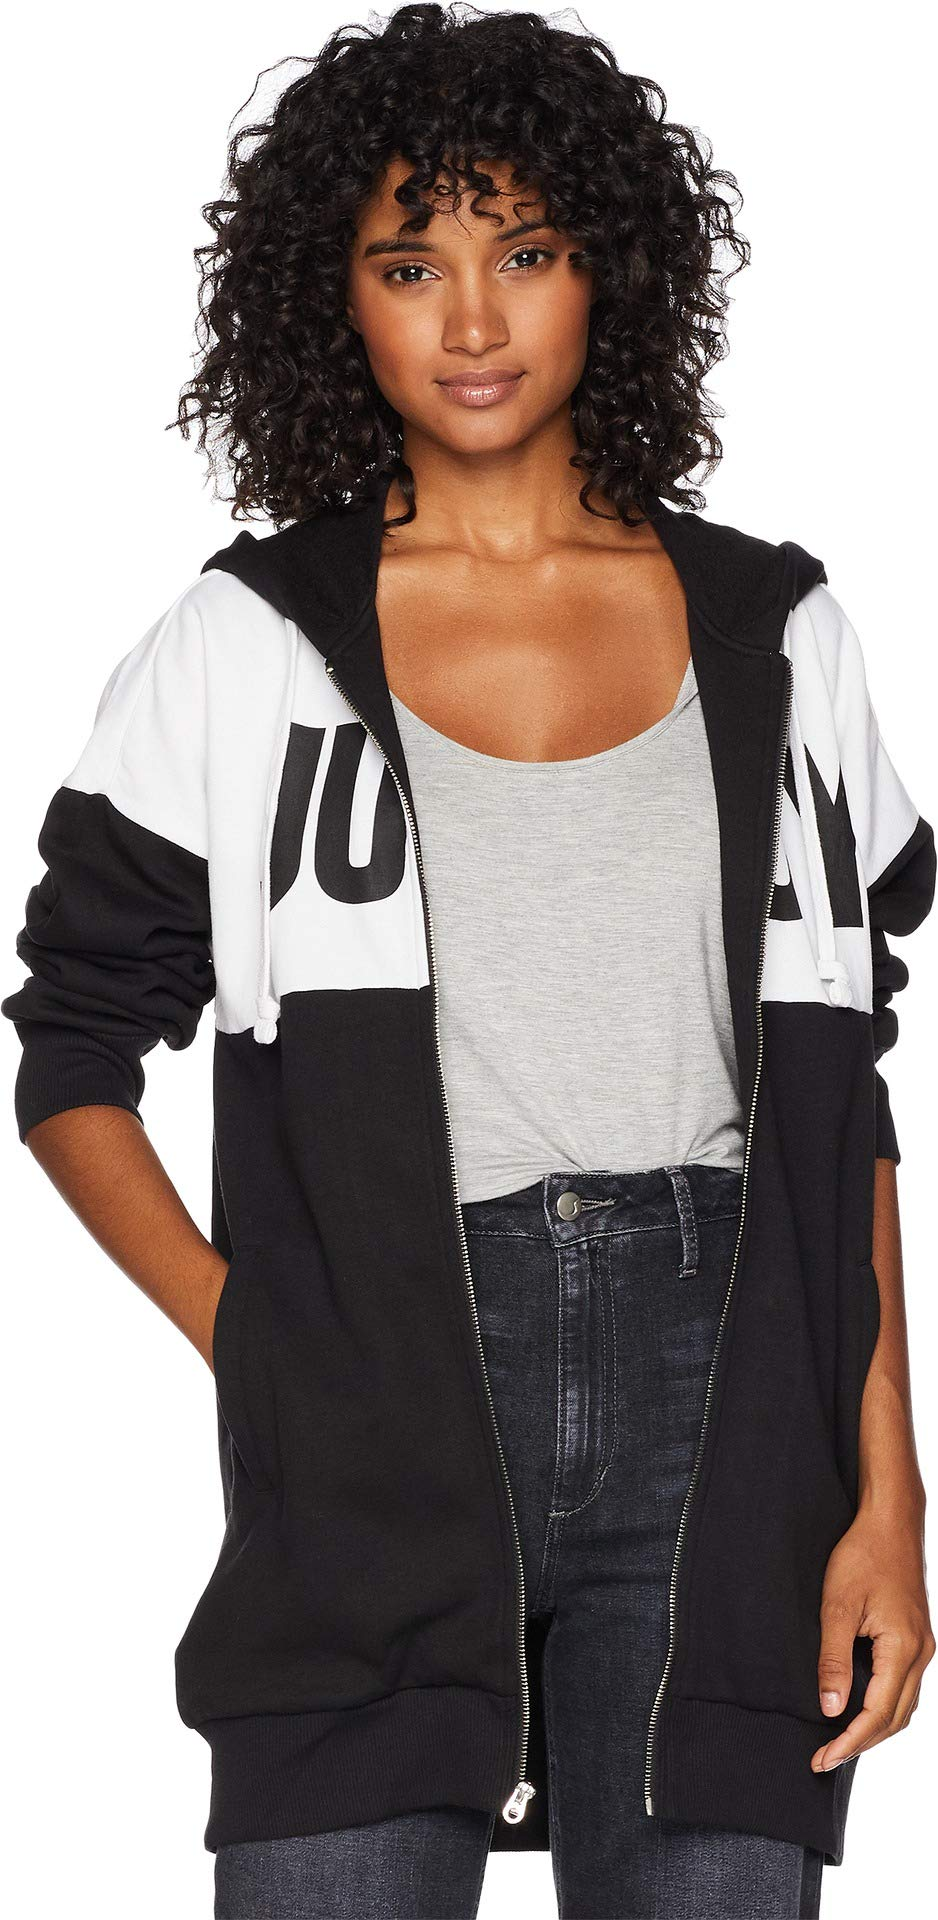 Juicy Couture Women's Fleece Color Blocked Oversize Jacket Pitch Black/White Large